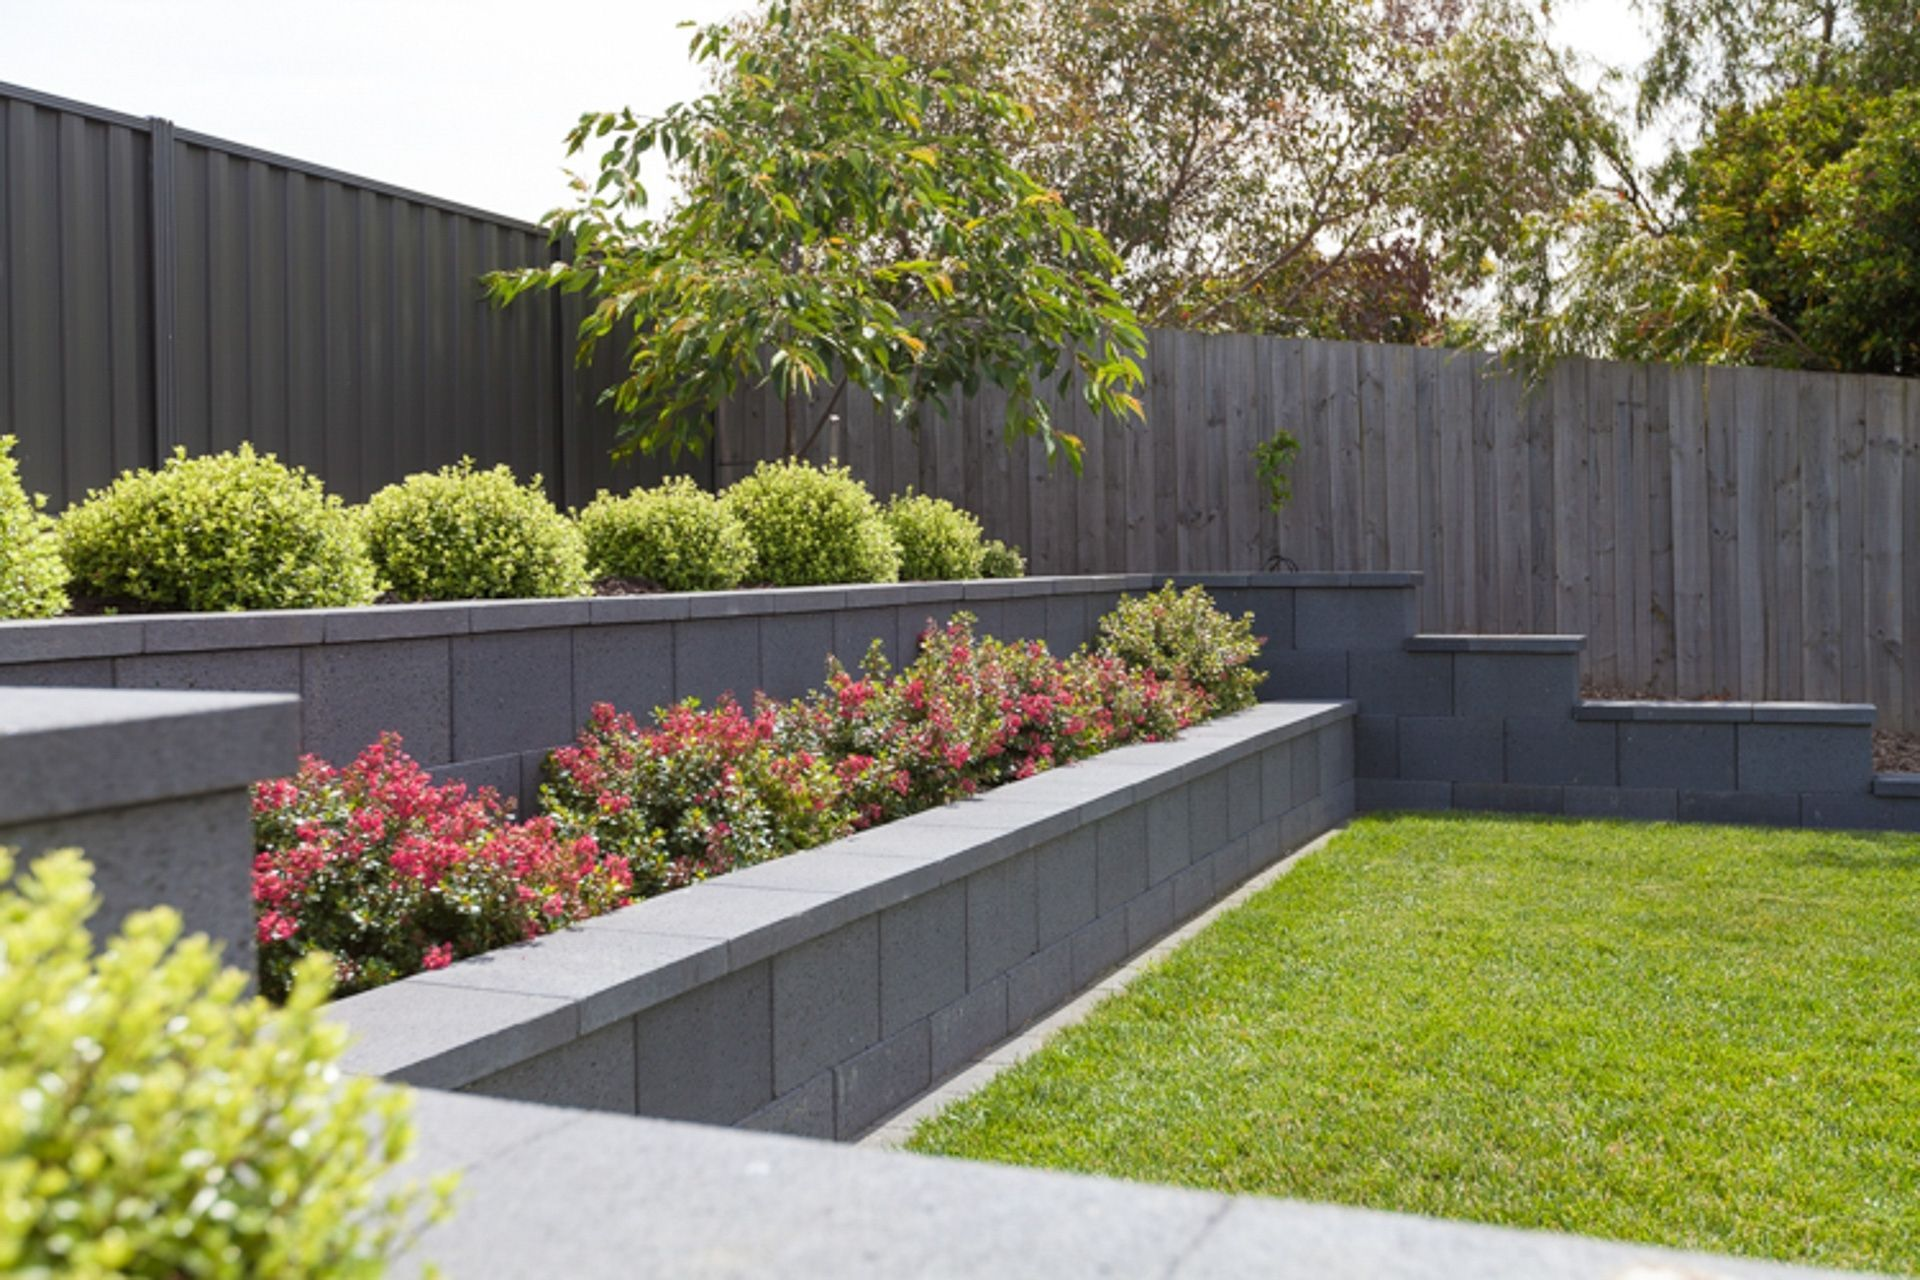 10 Garden Retaining Wall Ideas Stylish And Also Beautiful Landscaping Retaining Walls Small Garden Retaining Wall Sloped Garden